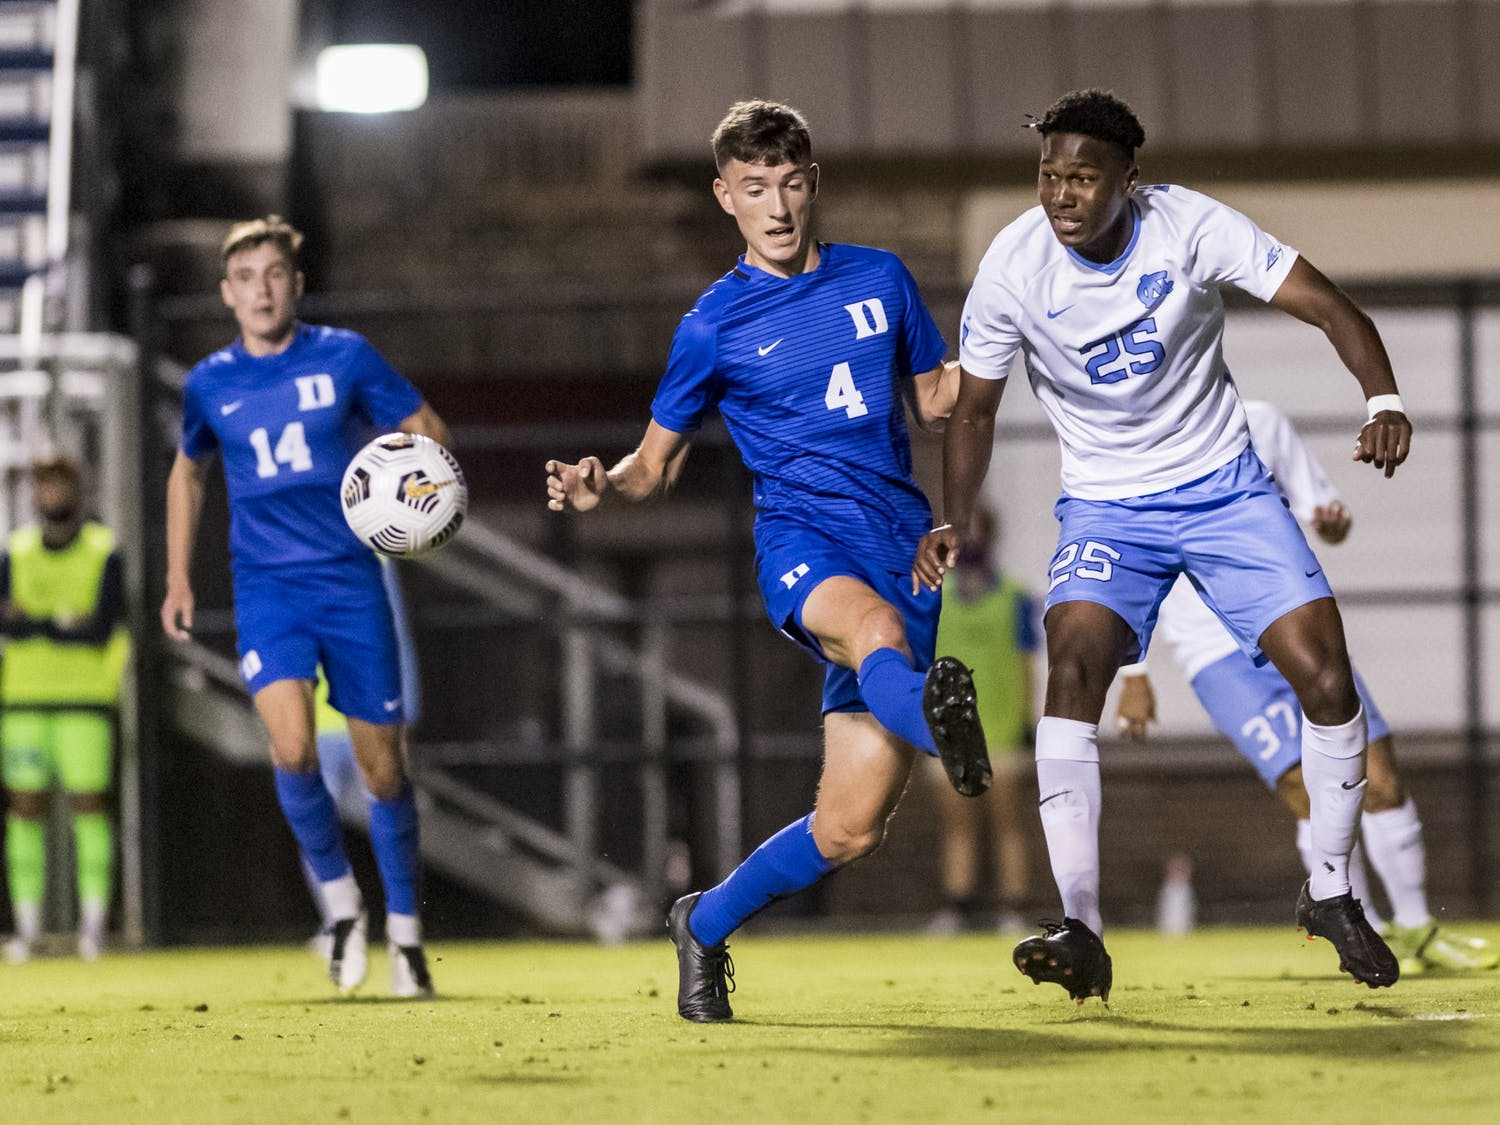 UNC freshman forward Akeim Clark (25) races Duke players for the ball at the game on Friday, October 2, 2020 in Koskinen Stadium. UNC won 2-0.